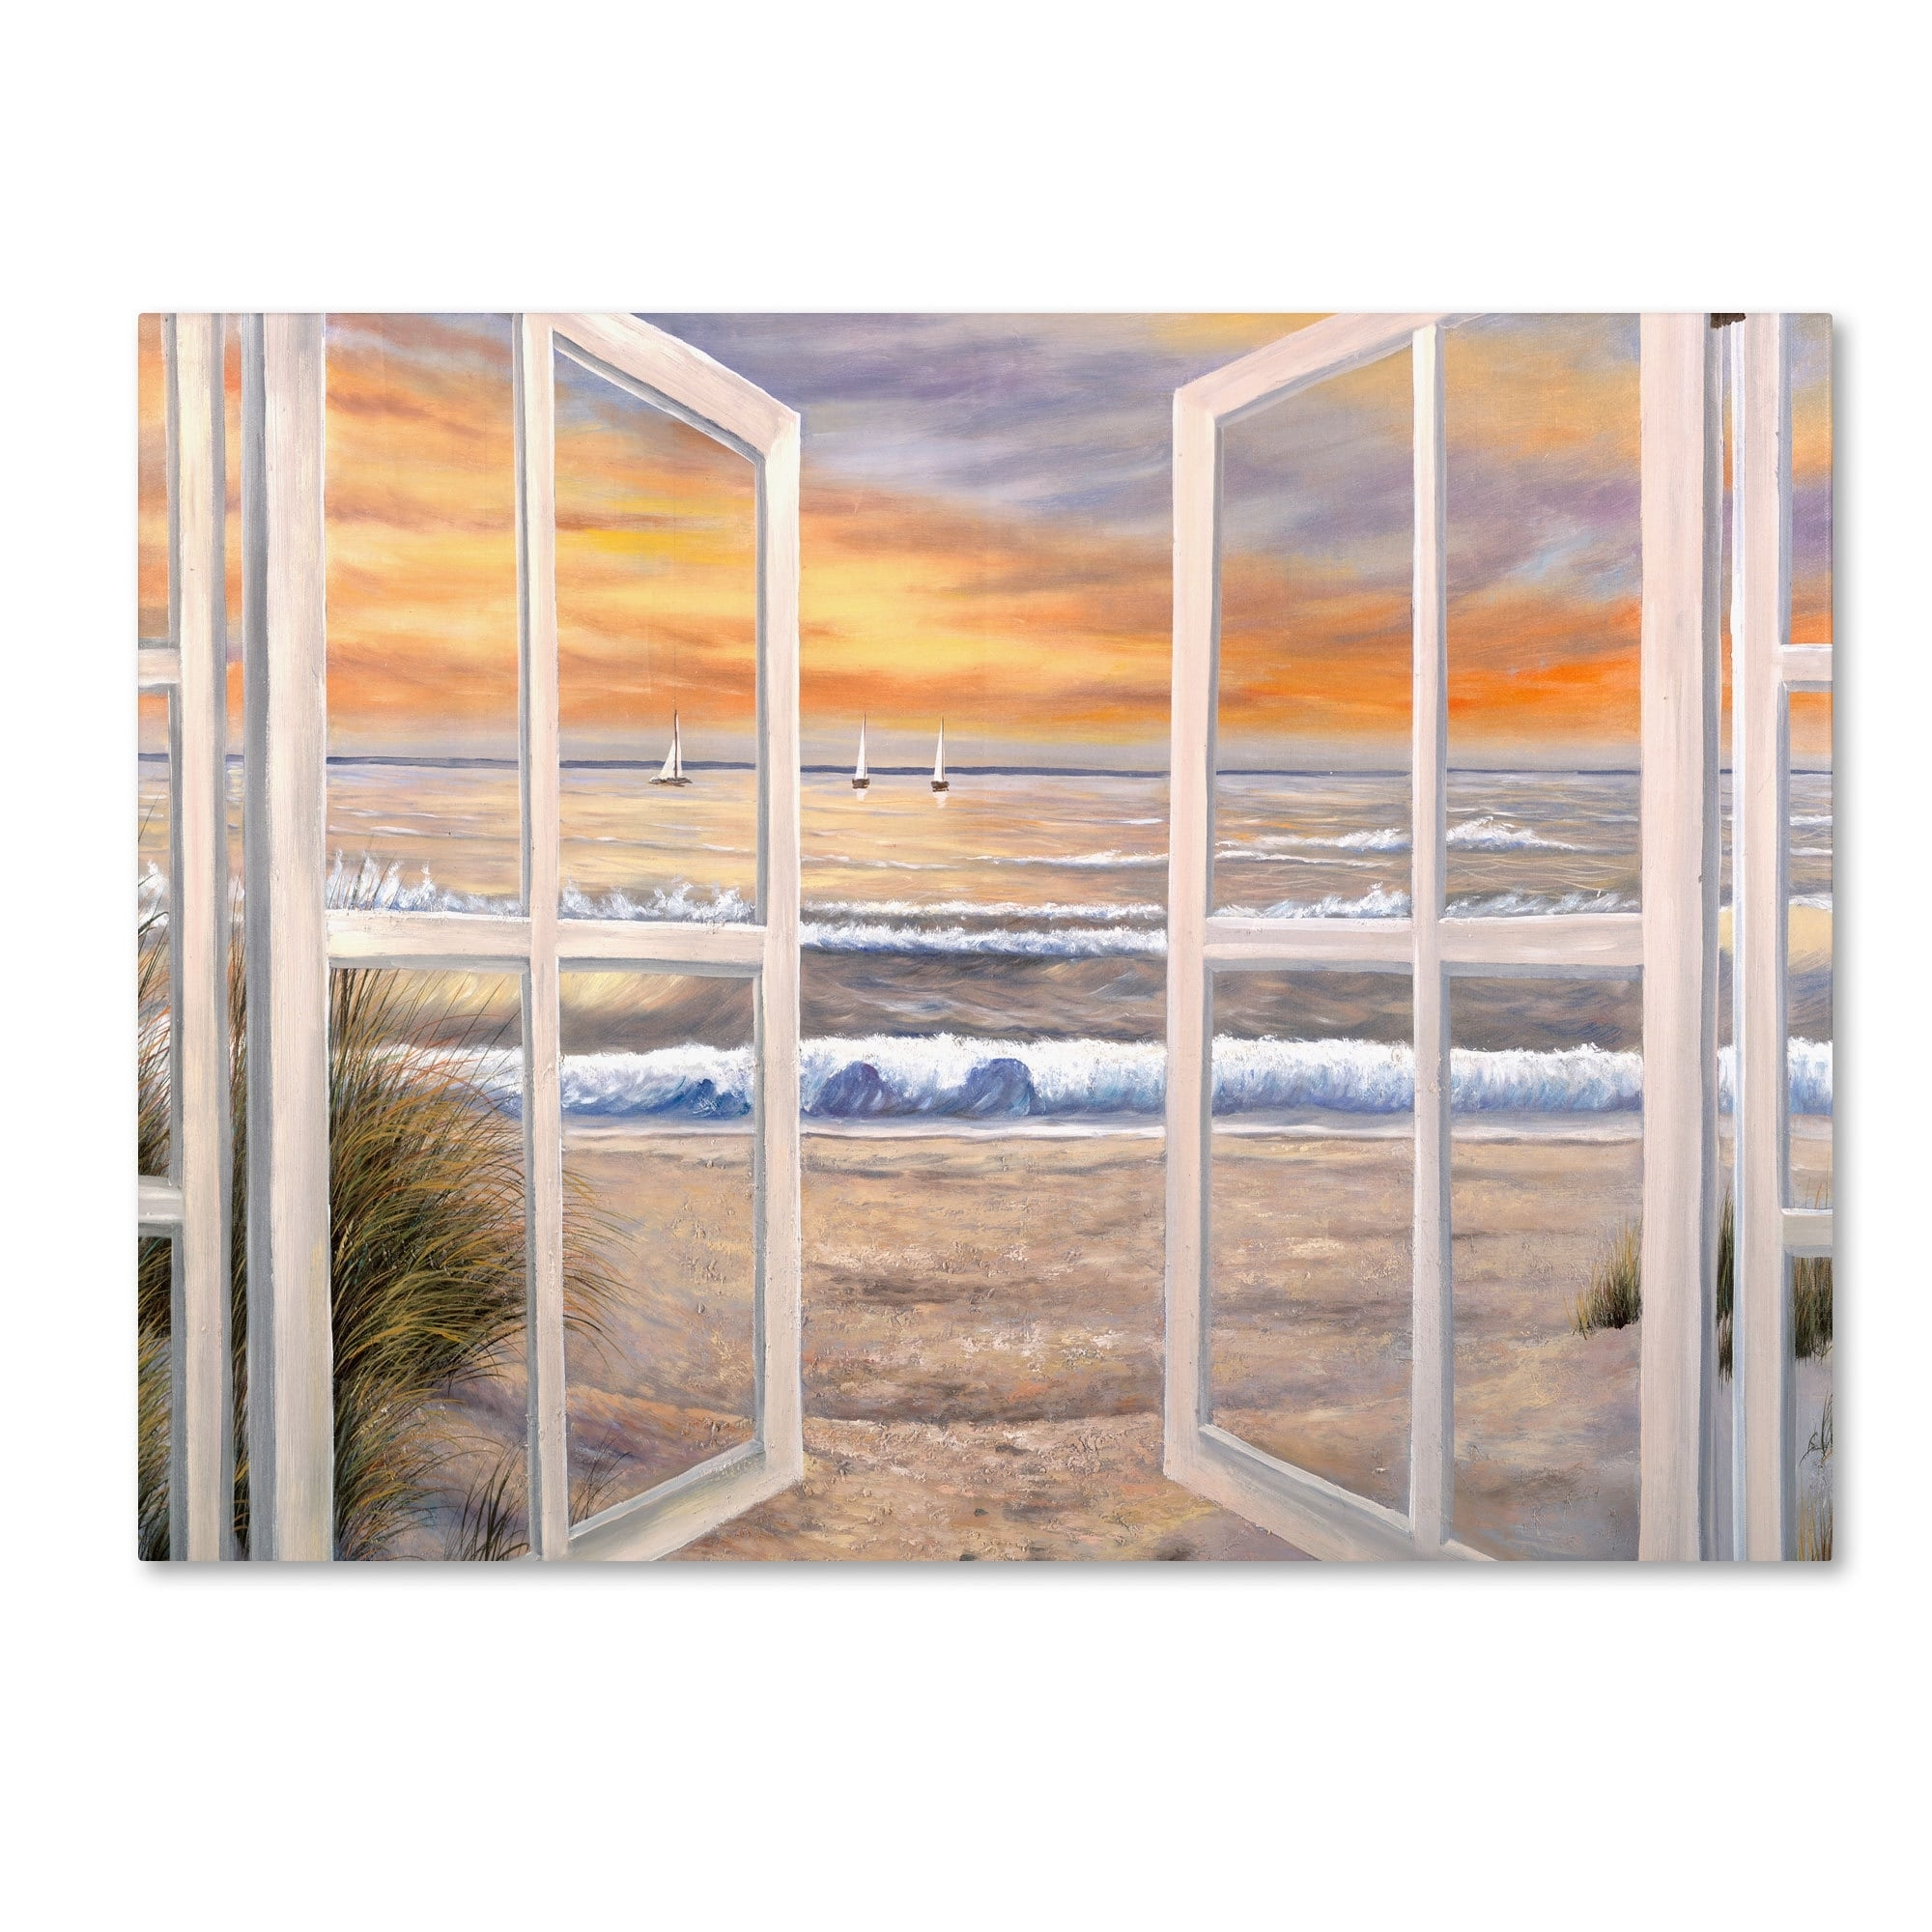 Joval 'elongated Window On Canvas' Canvas Wall Art – Free Shipping Intended For Most Popular Joval Canvas Wall Art (View 2 of 15)